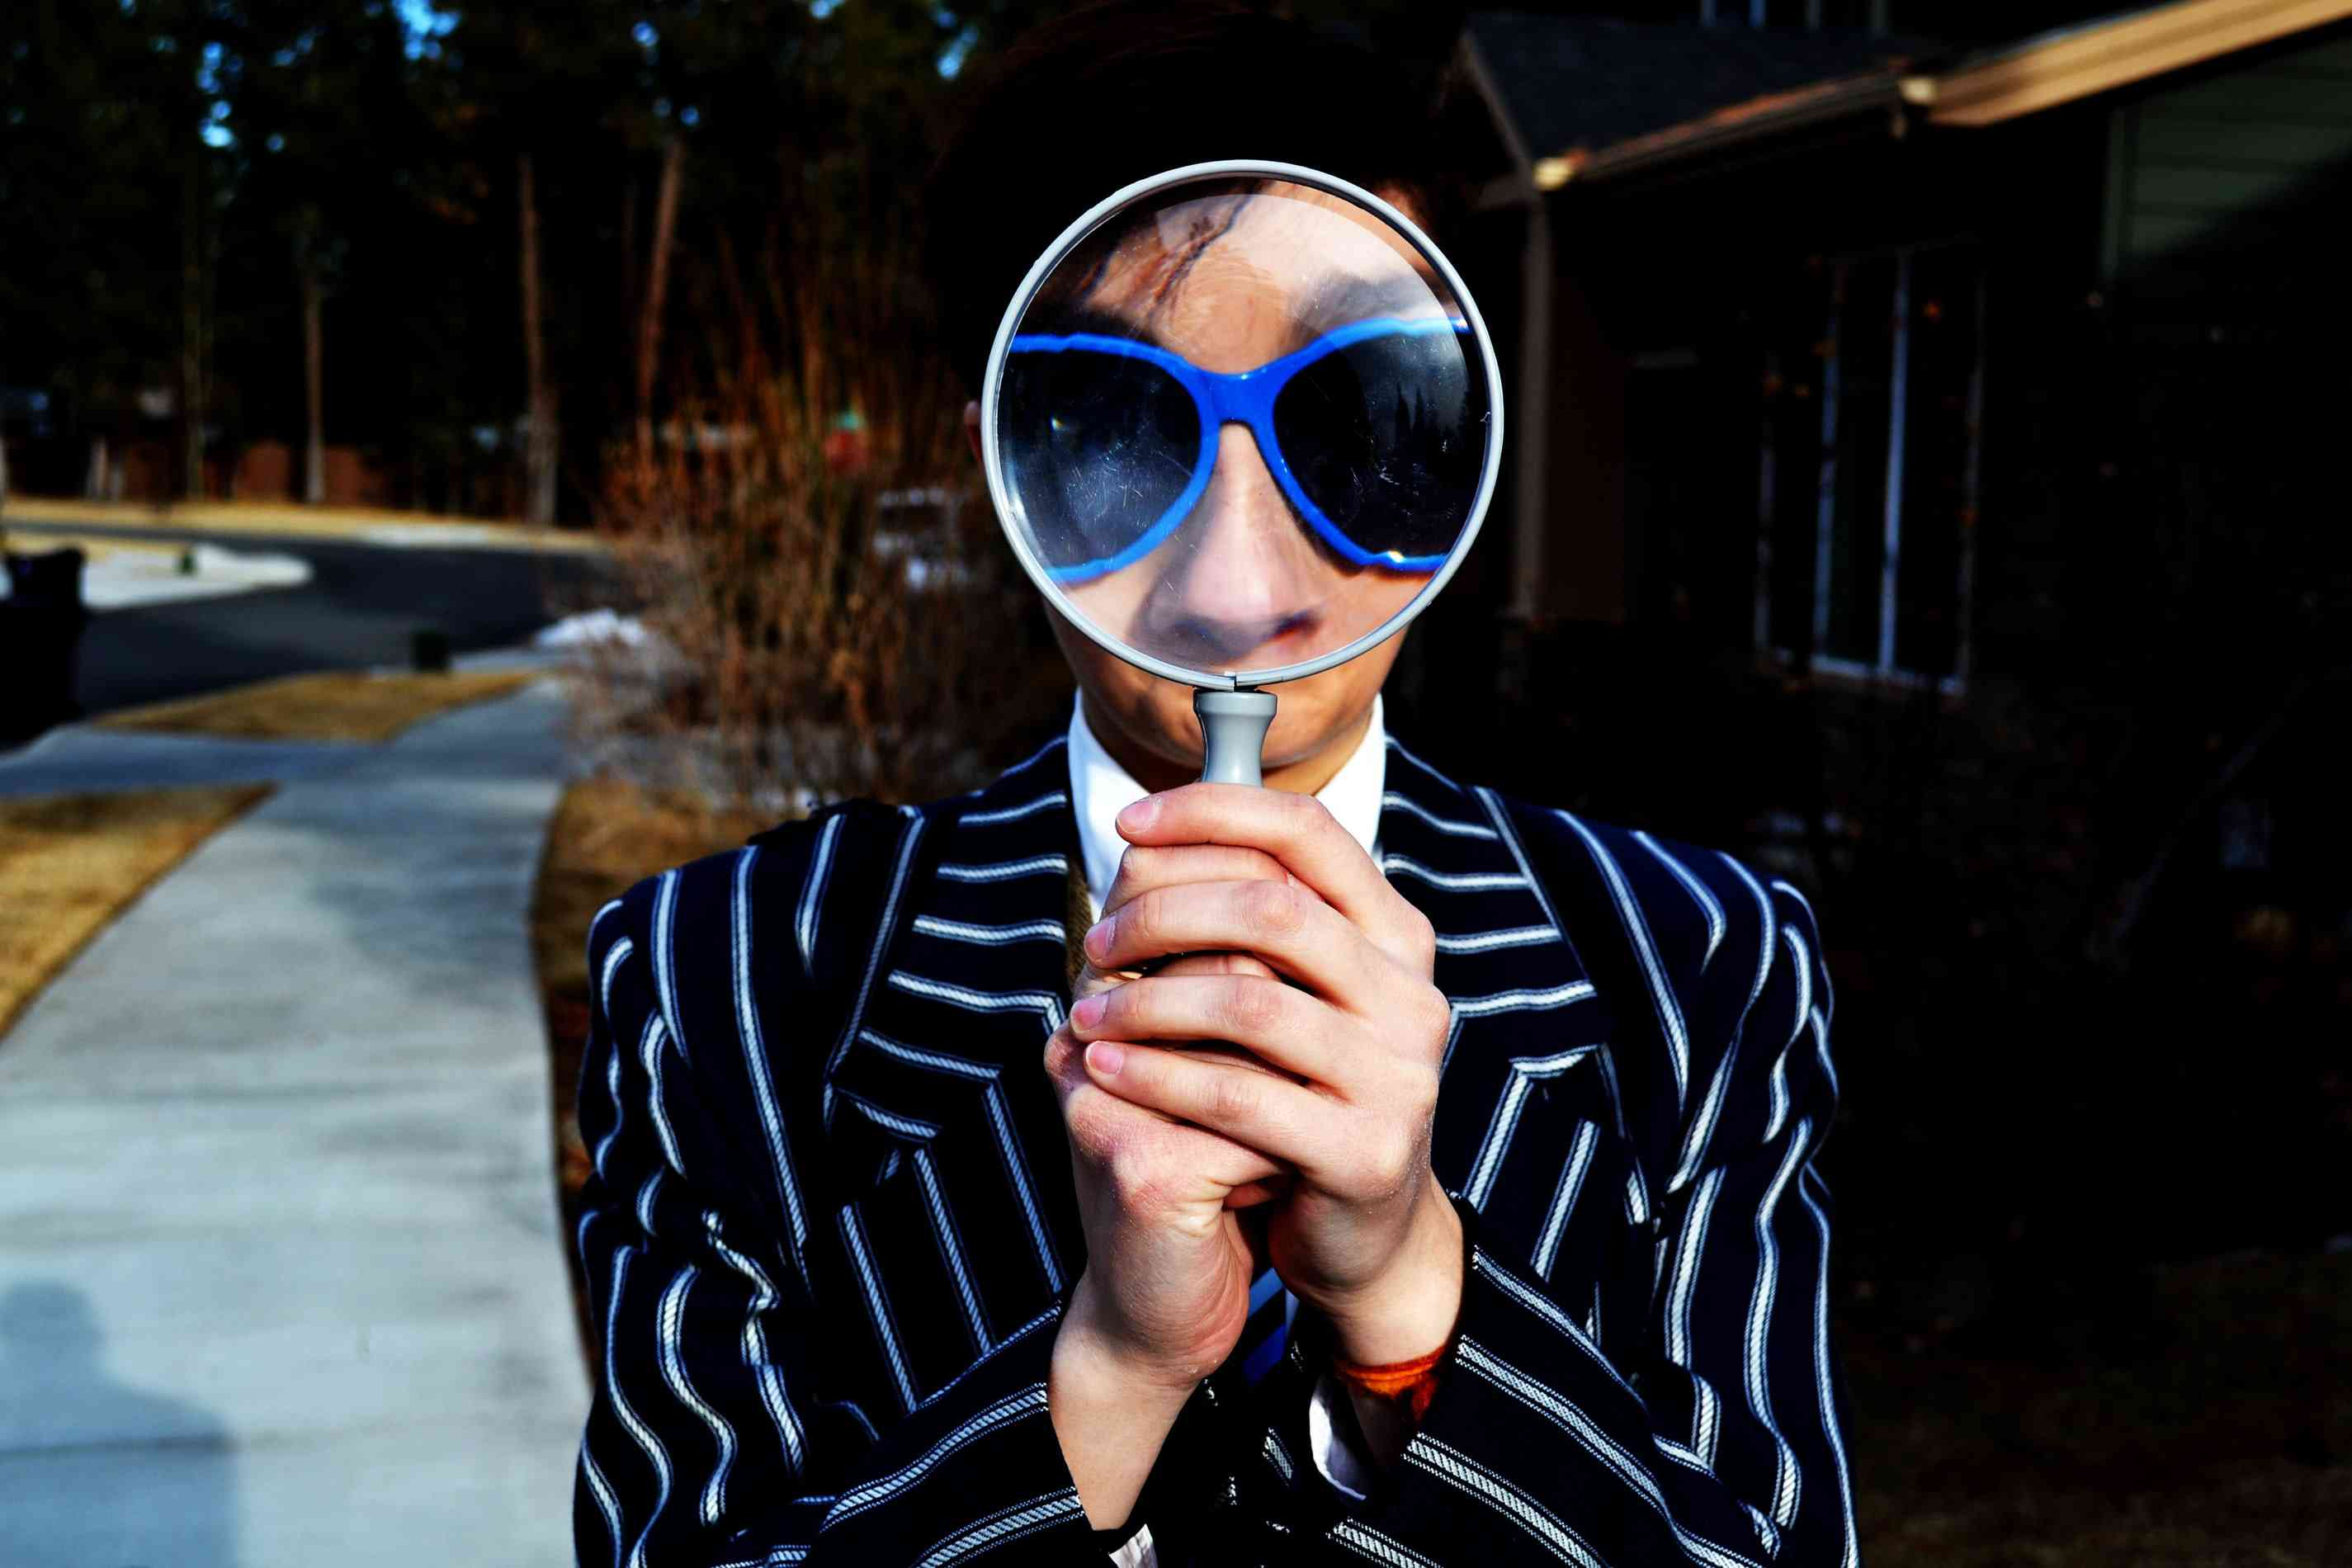 person using magnifying glass to enlarge their face